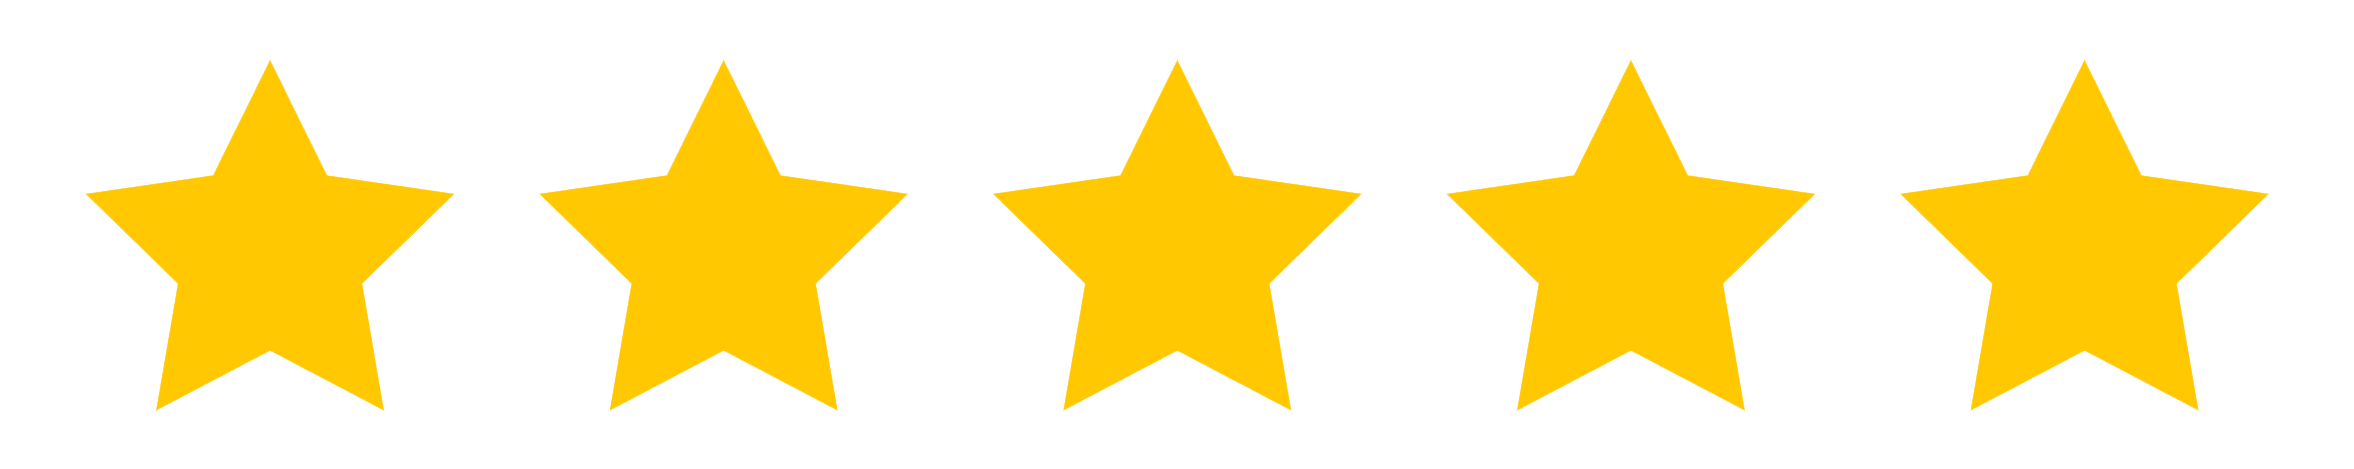 Reviews star rating for A-1 Self Storage in Oakland, California